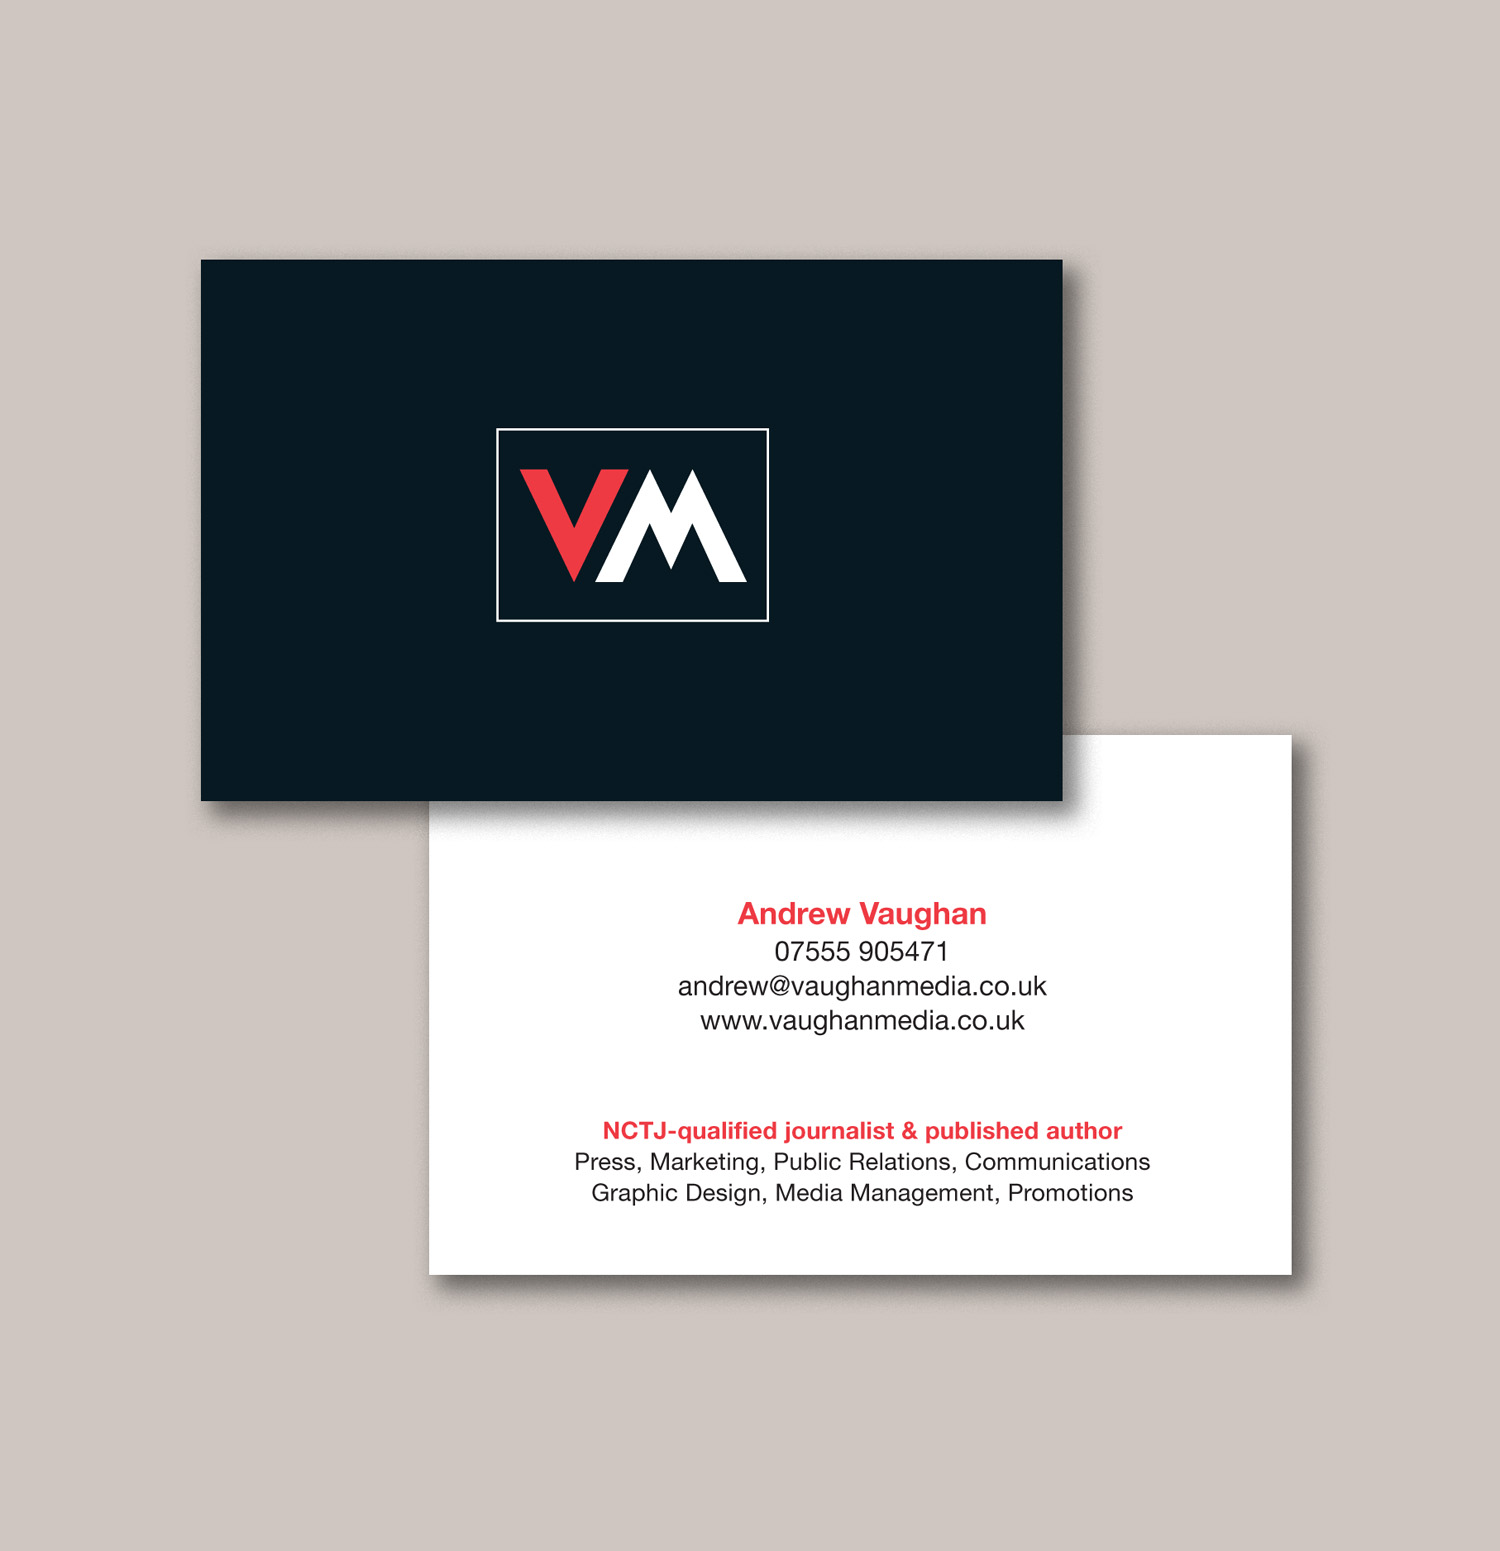 Public Relations Specialist Business Cards